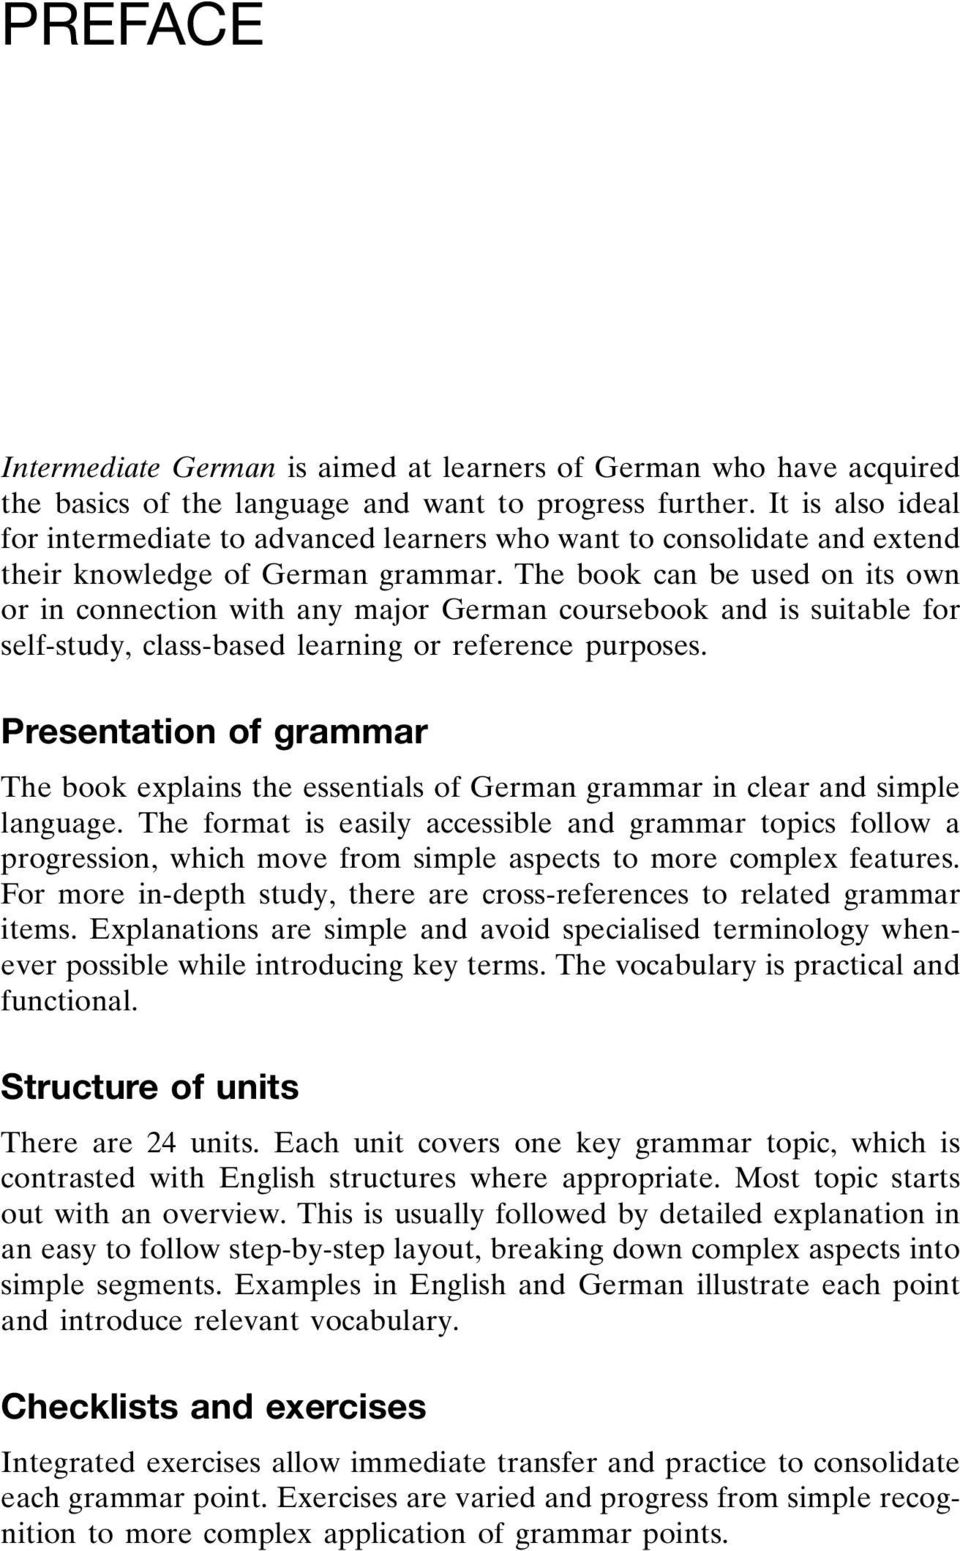 The book can be used on its own or in connection with any major German coursebook and is suitable for self-study, class-based learning or reference purposes.